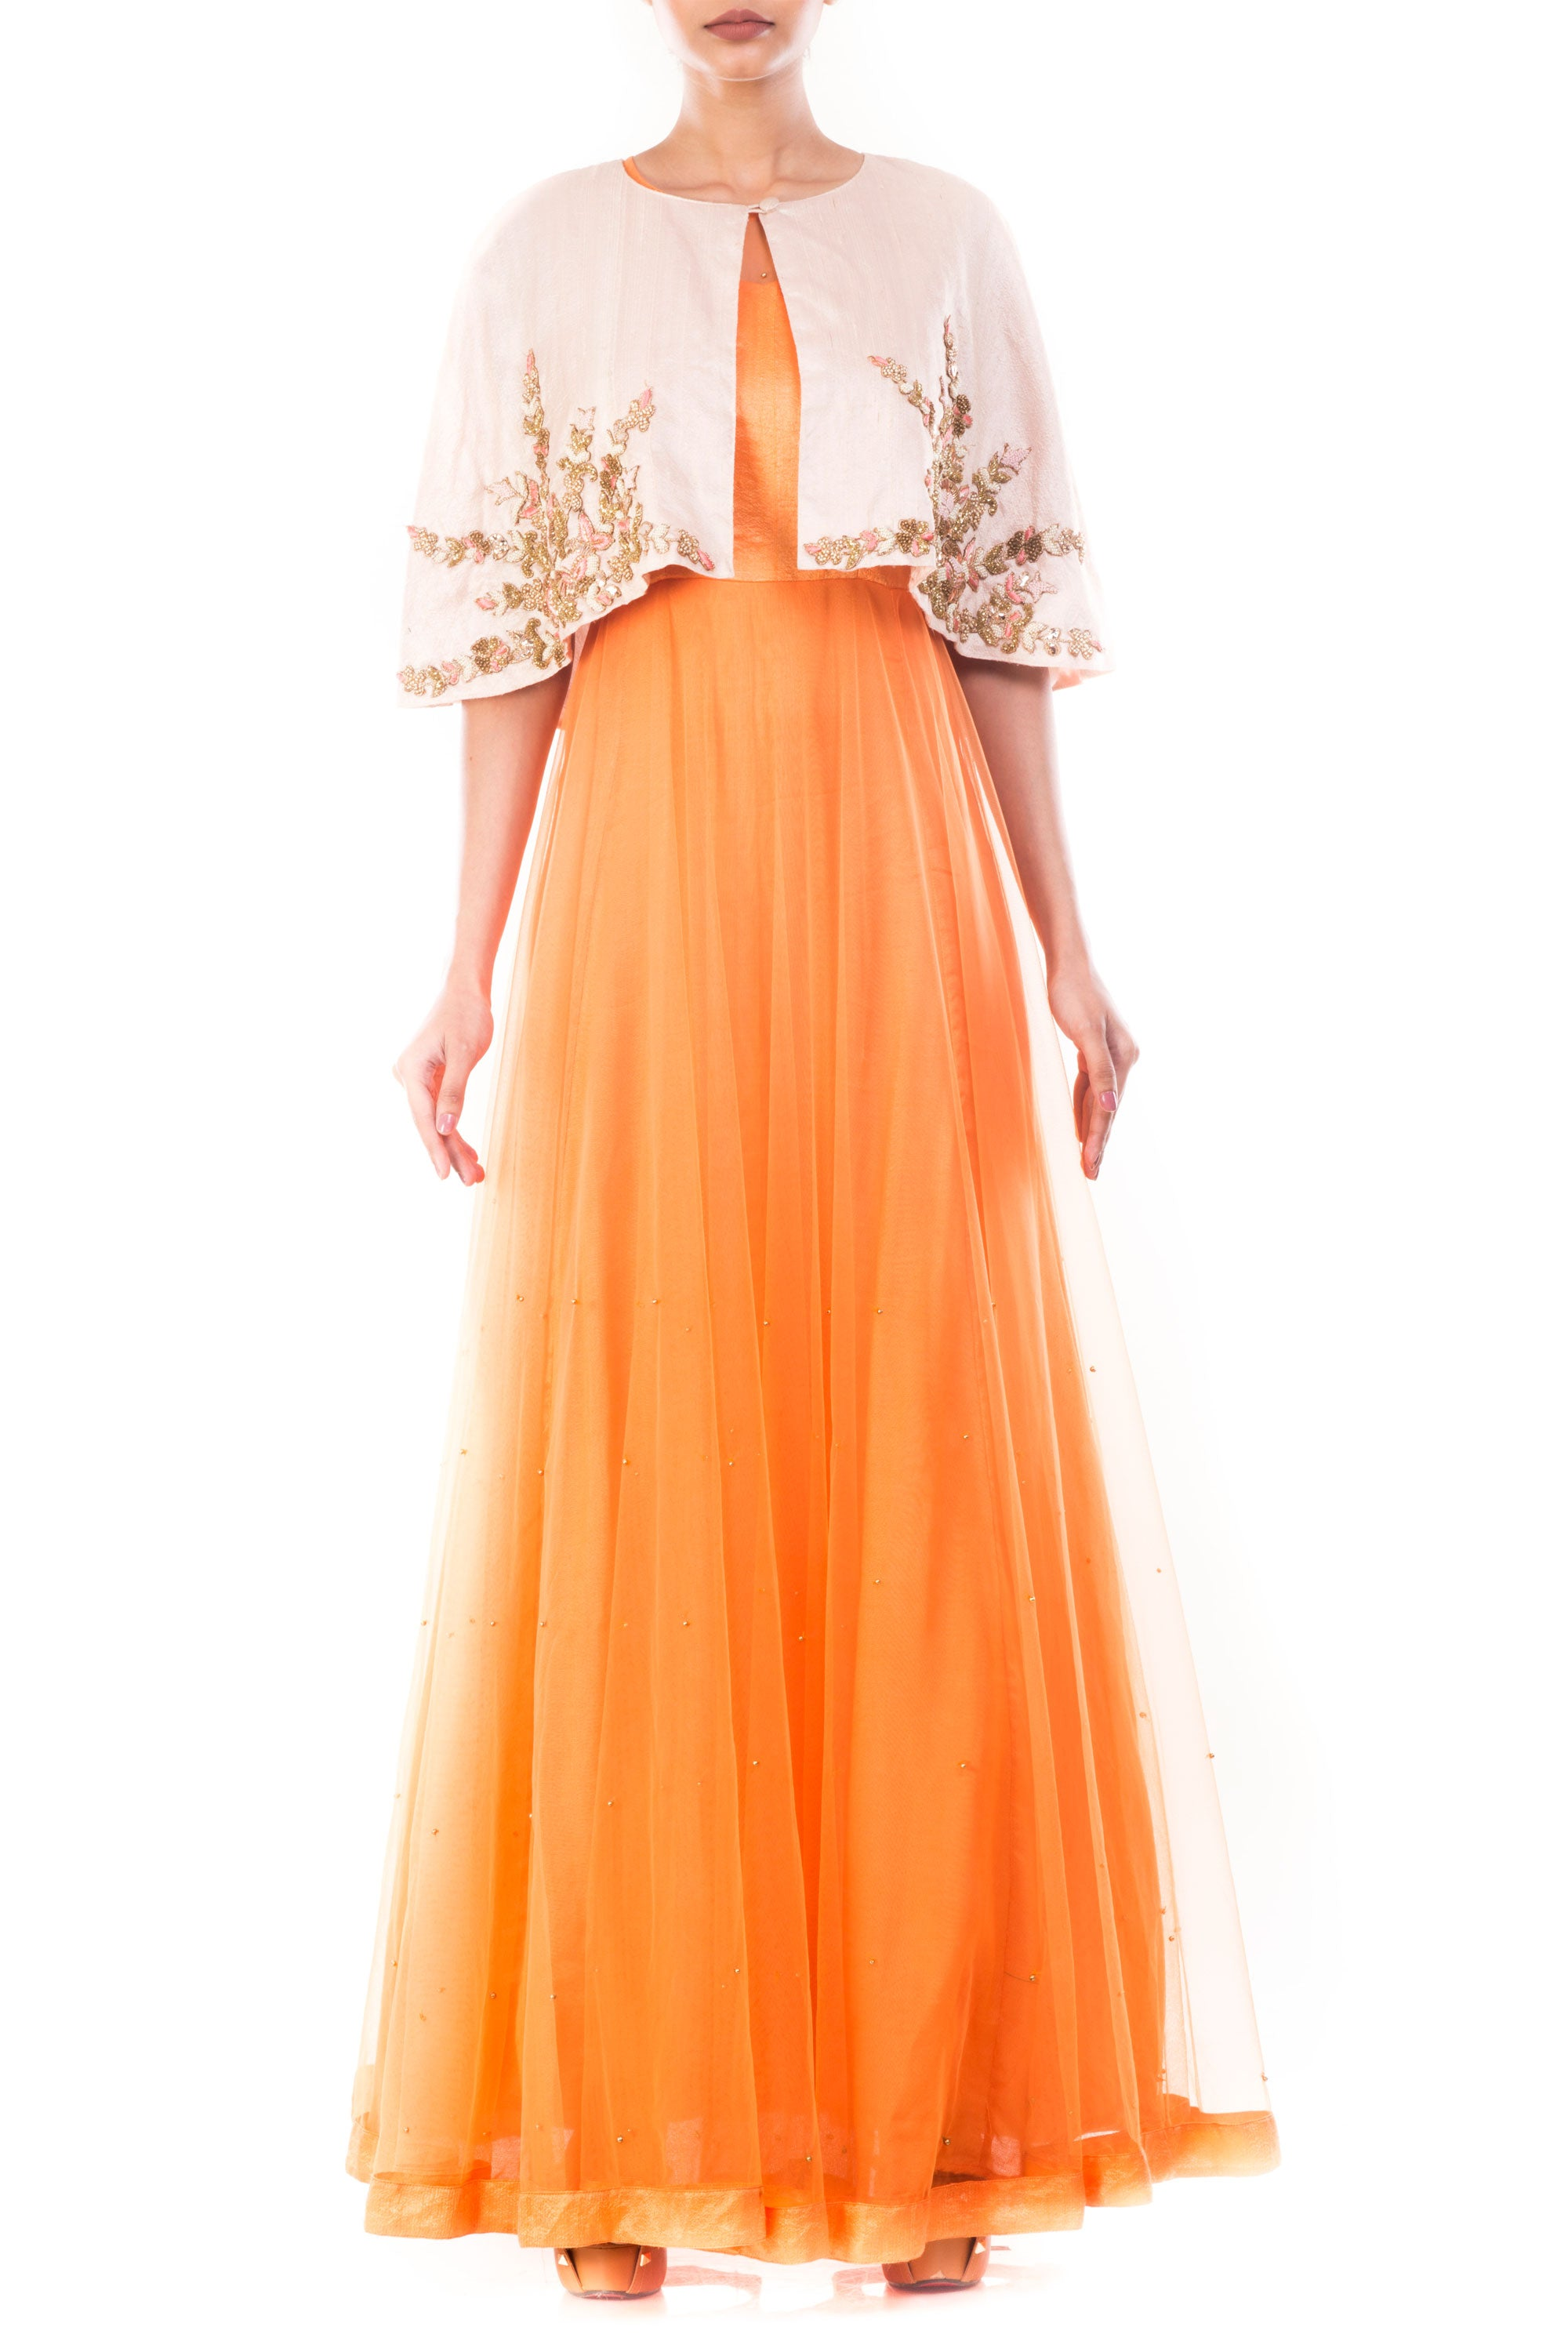 Tangerine Vintage Gown With Embellished Jacket Front